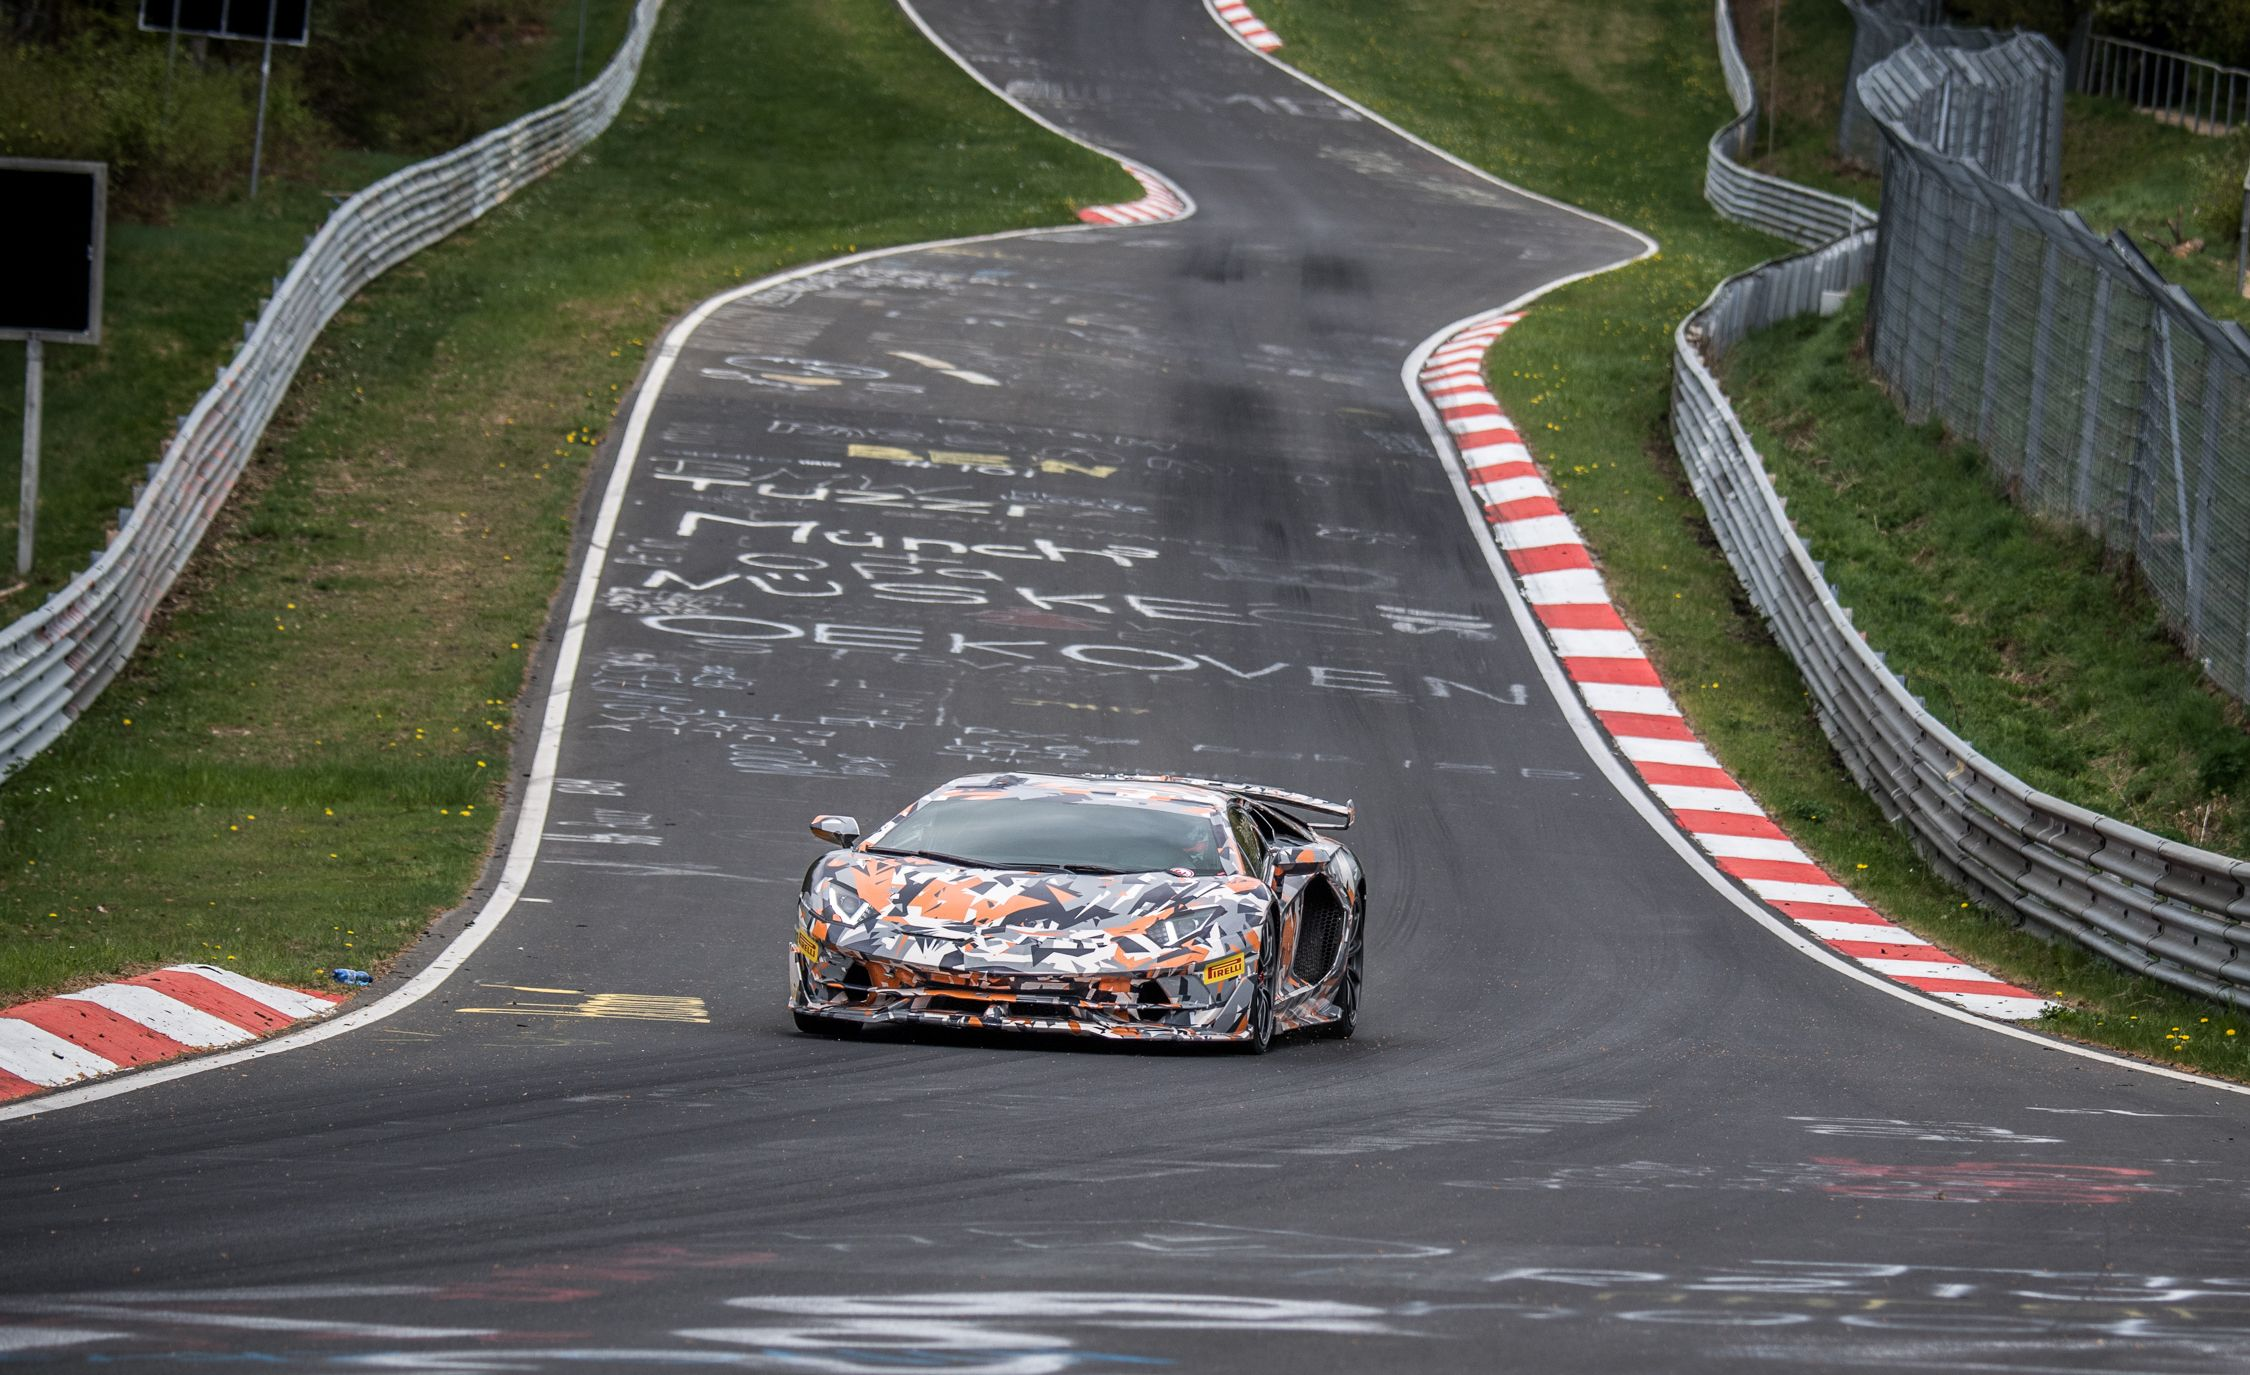 Lamborghini Aventador at the Nurburgring